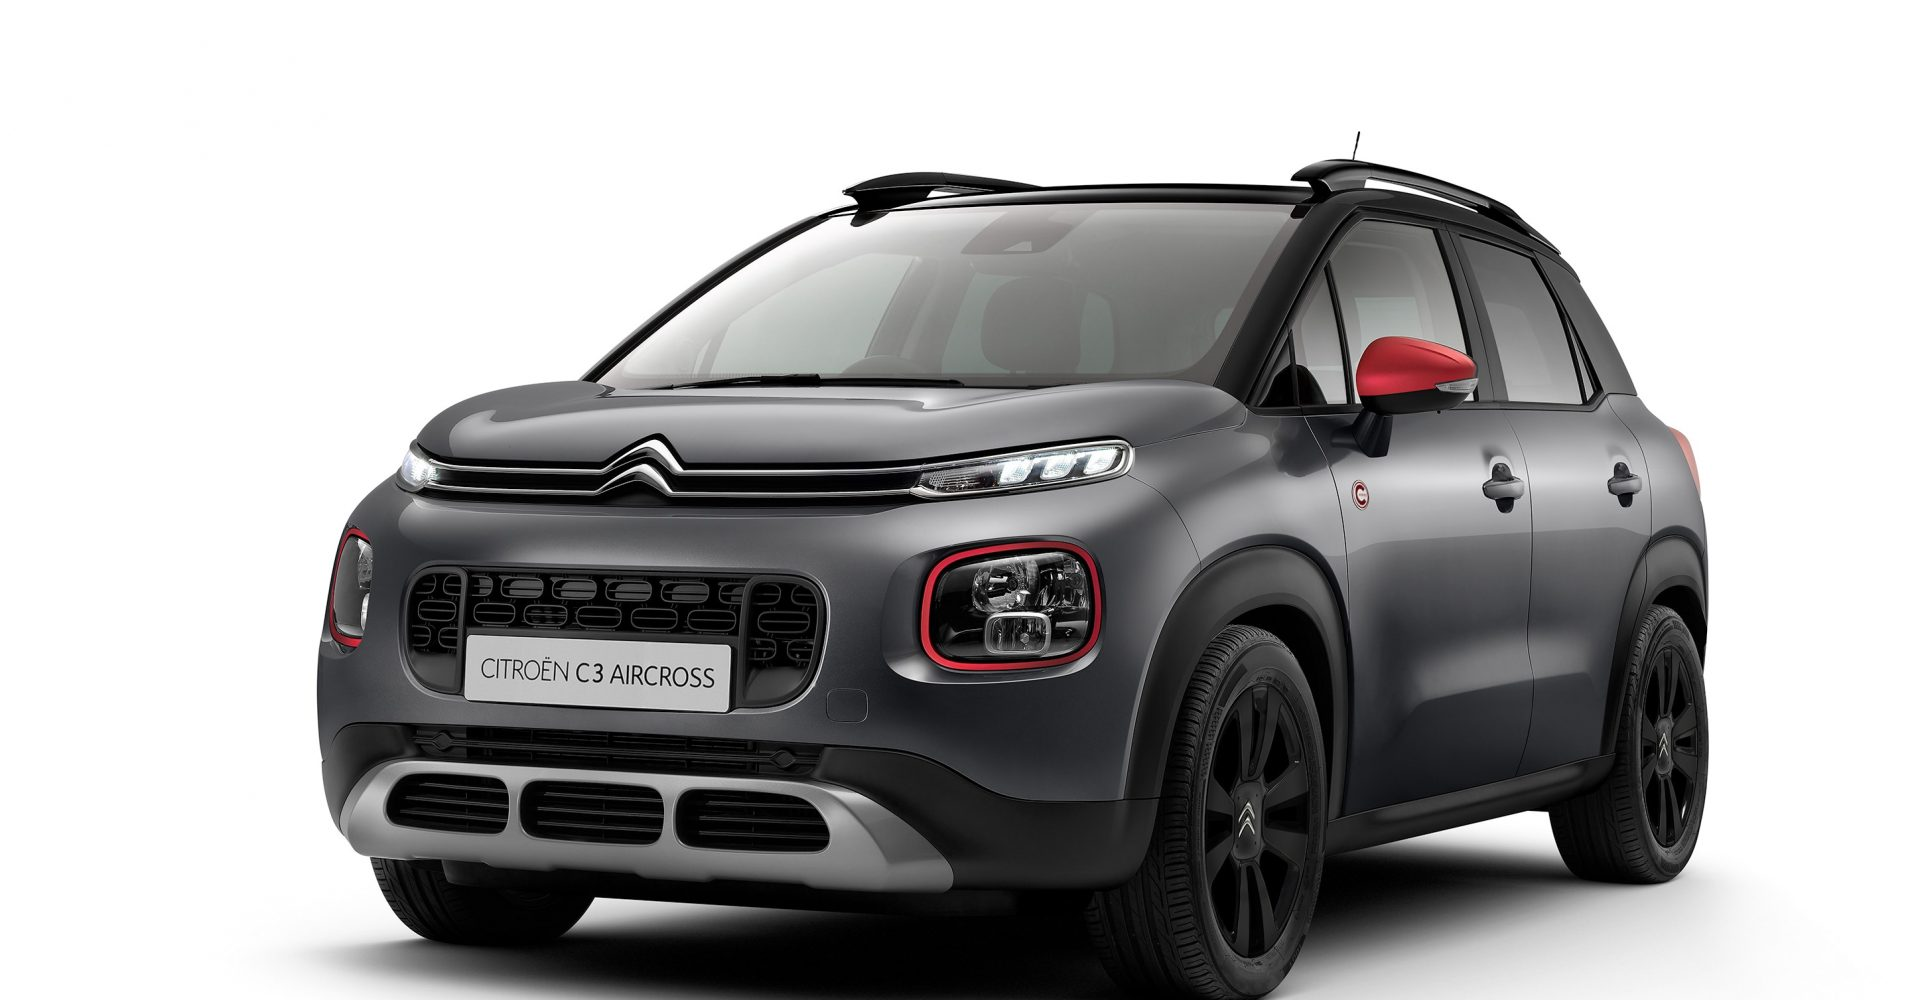 Citroen announces 'C-Series' special edition for C3 Aircross